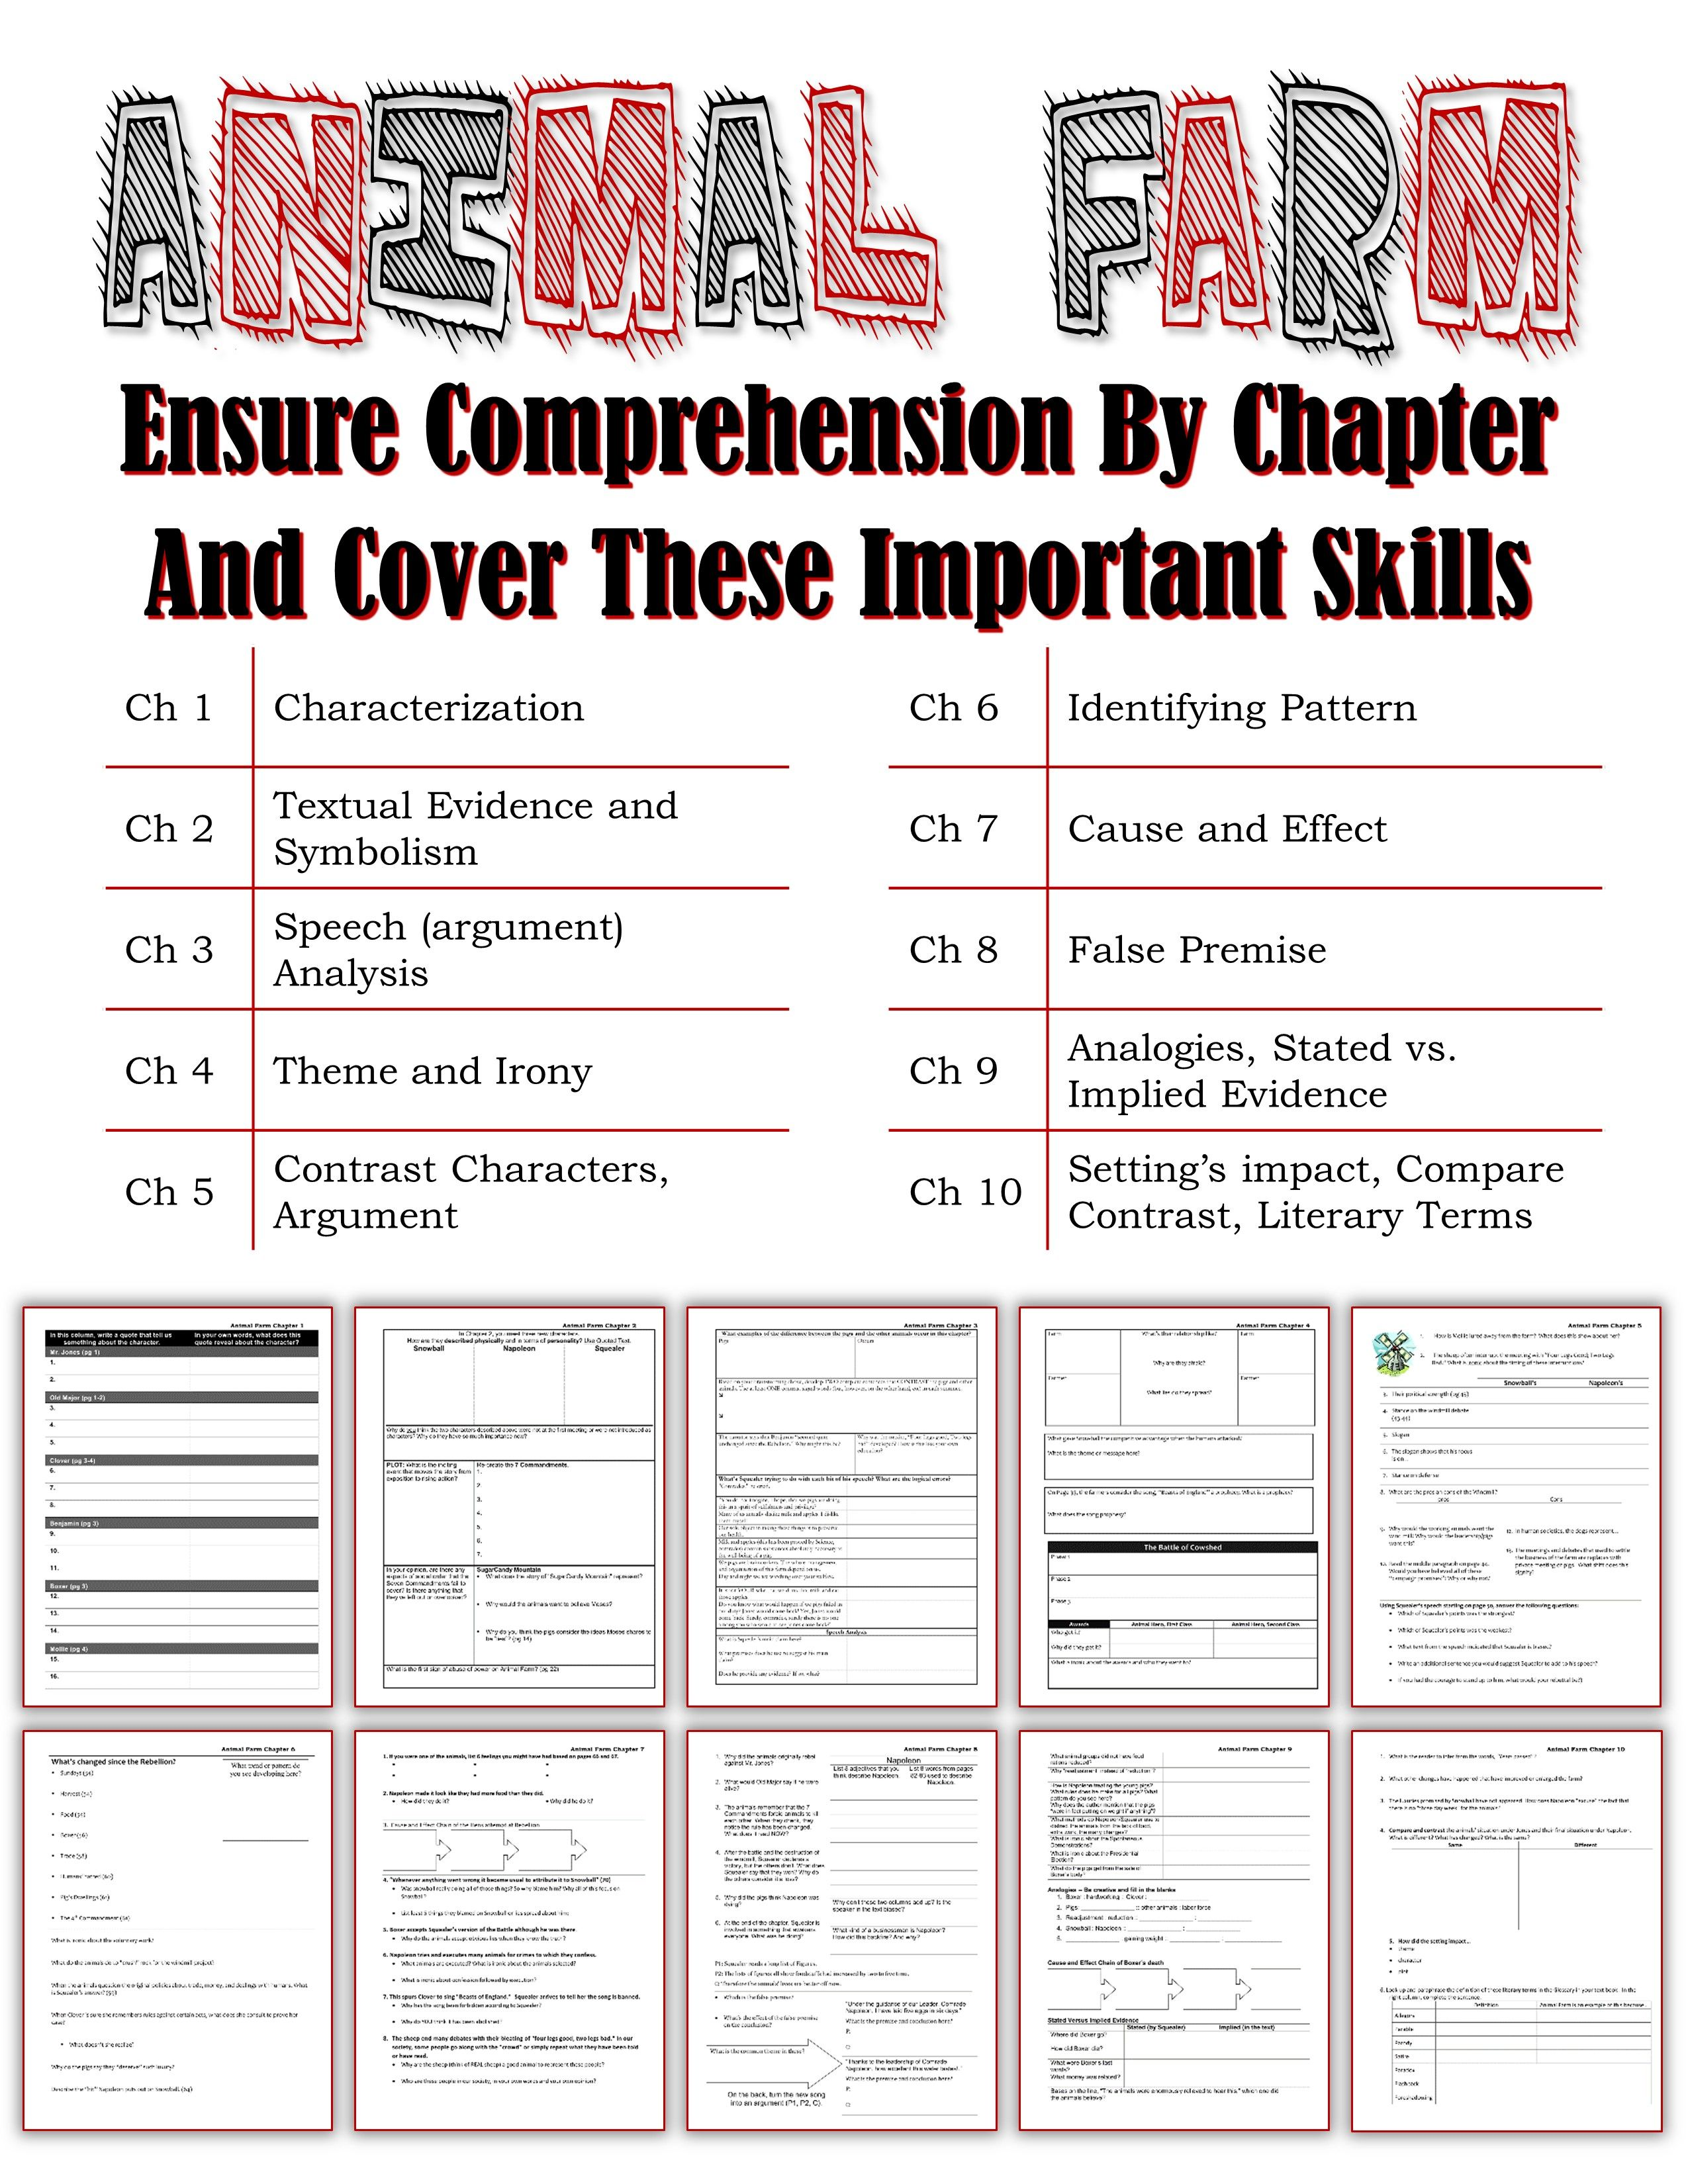 worksheet Rhetorical Devices Worksheet animal farm unit one skills page per chapter plus 4 assessments by skill